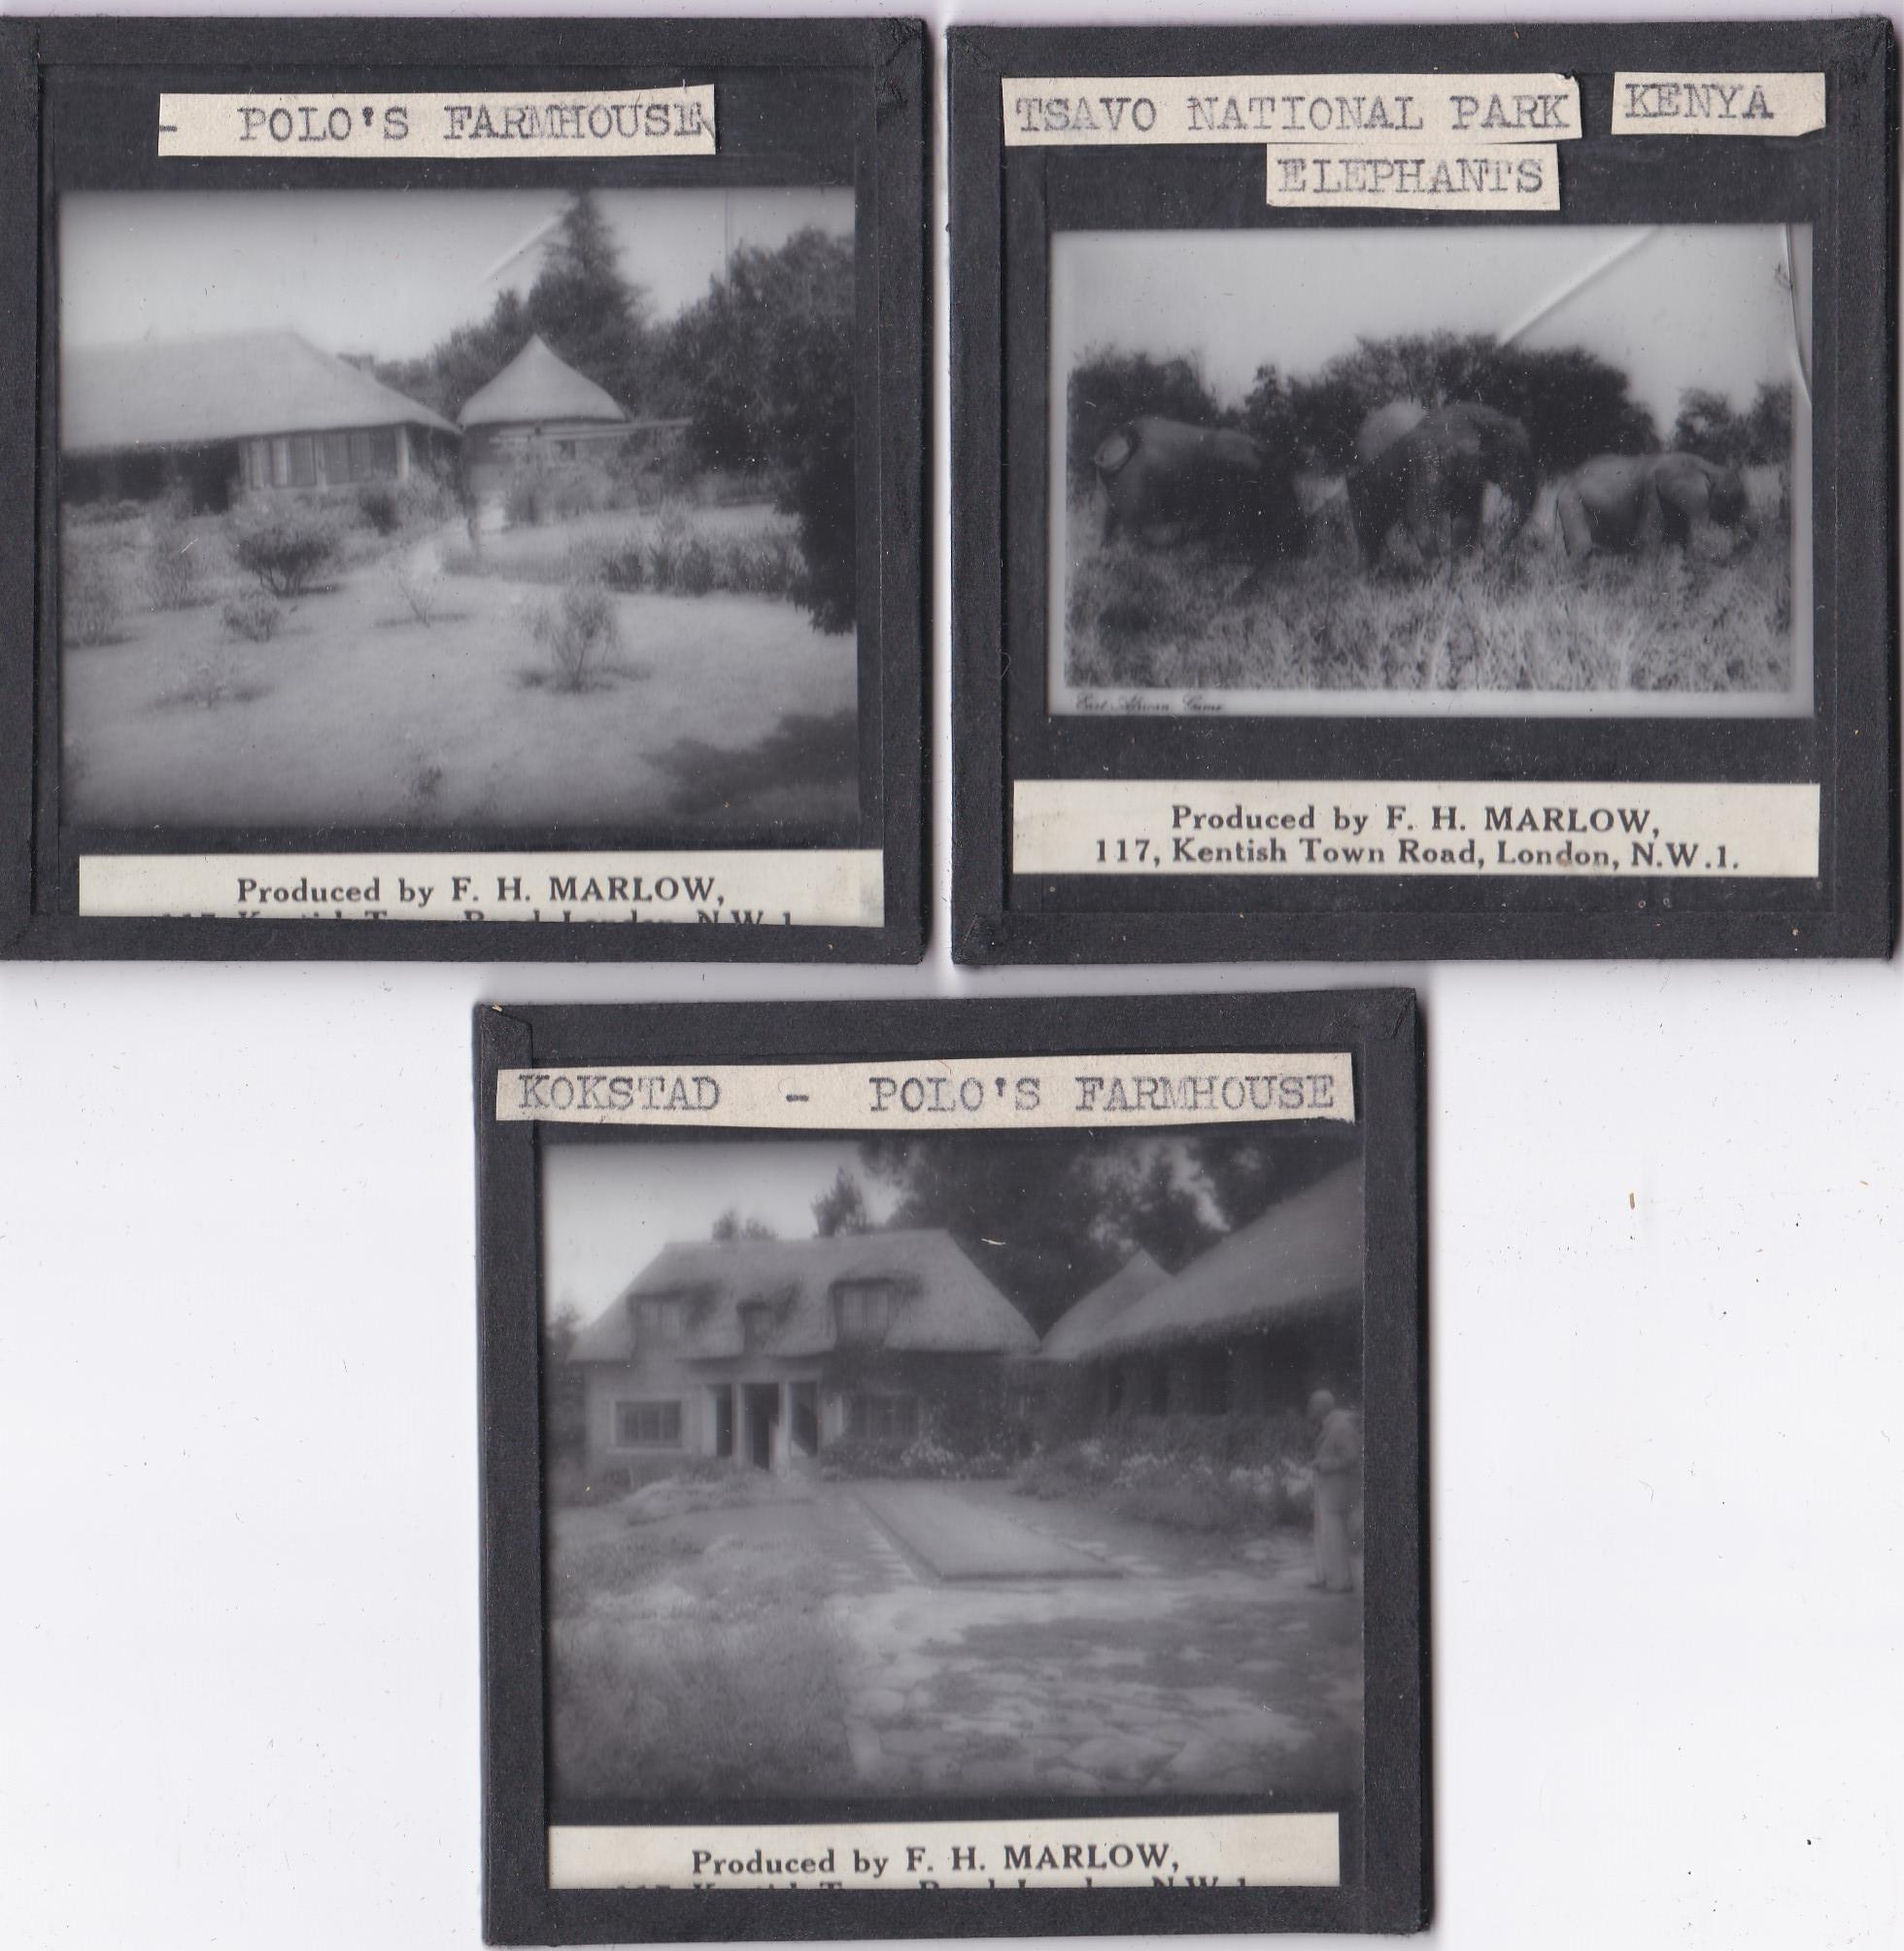 Views in Africa b/w Magic Lantern Slides (11) produced by F.H. Marlow including: Tsavo National Park - Image 2 of 3